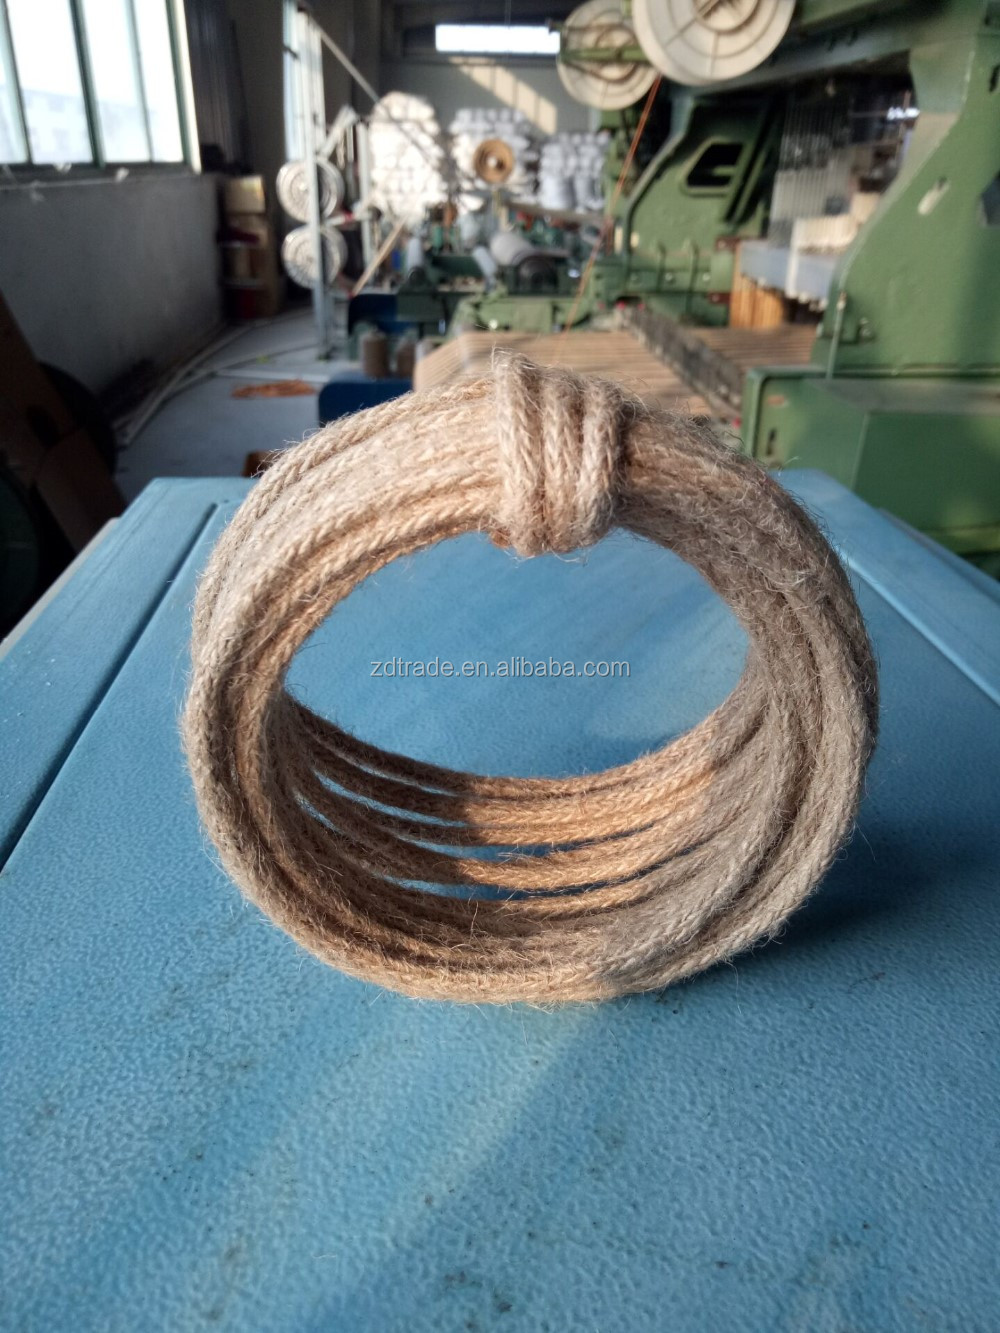 Trendy 5mm Wired Jute cord for Craft, Outdooring rope, Home Decorating, Gardening, scrapbooking